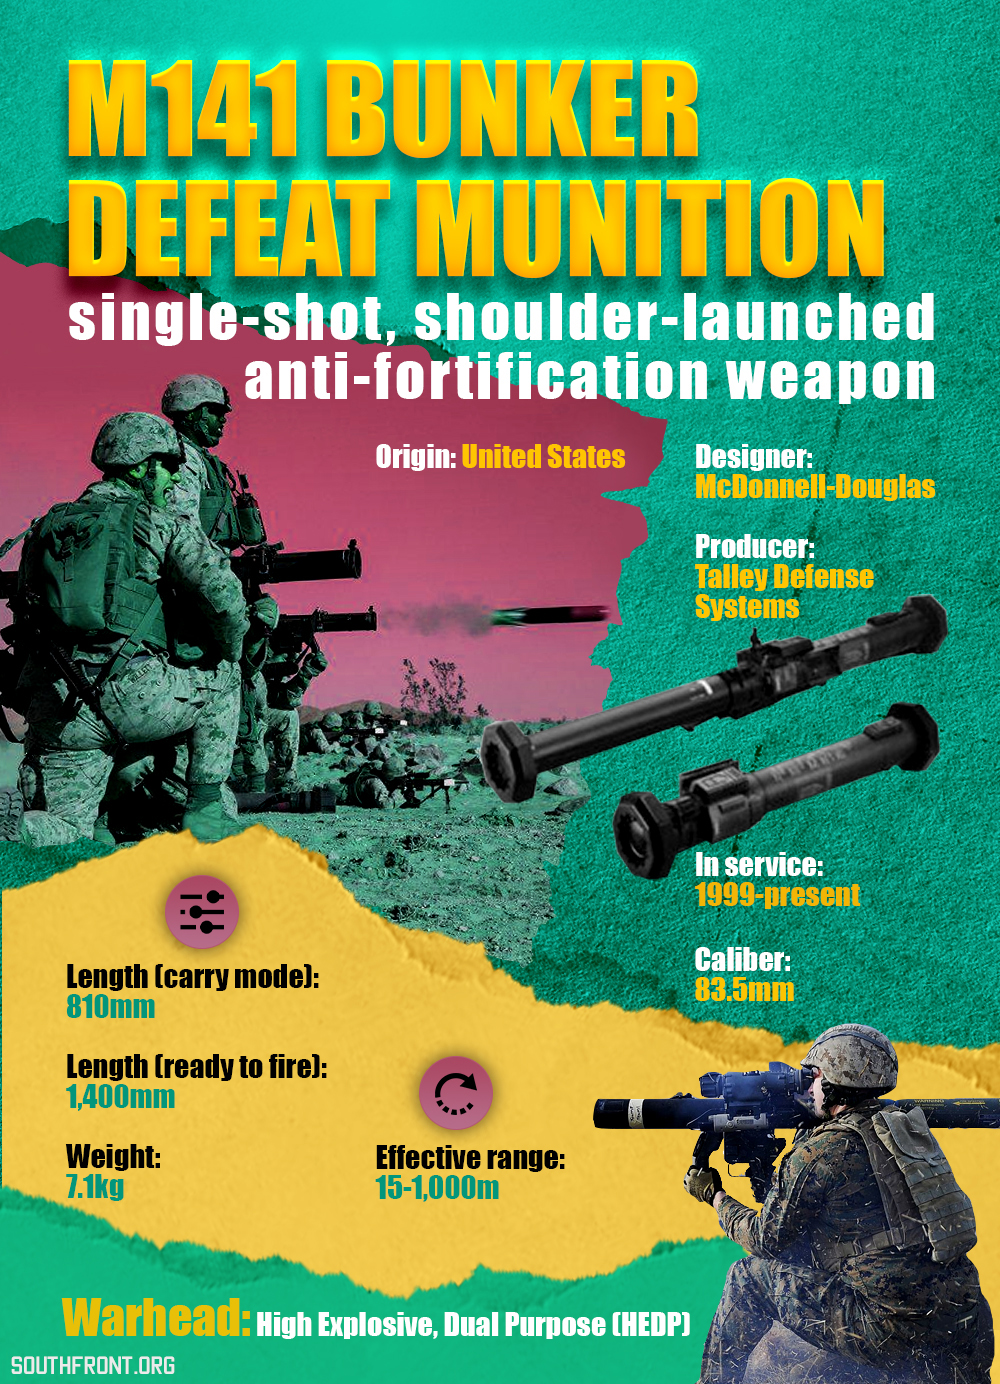 M141 Bunker Defeat Munition (Infographics)